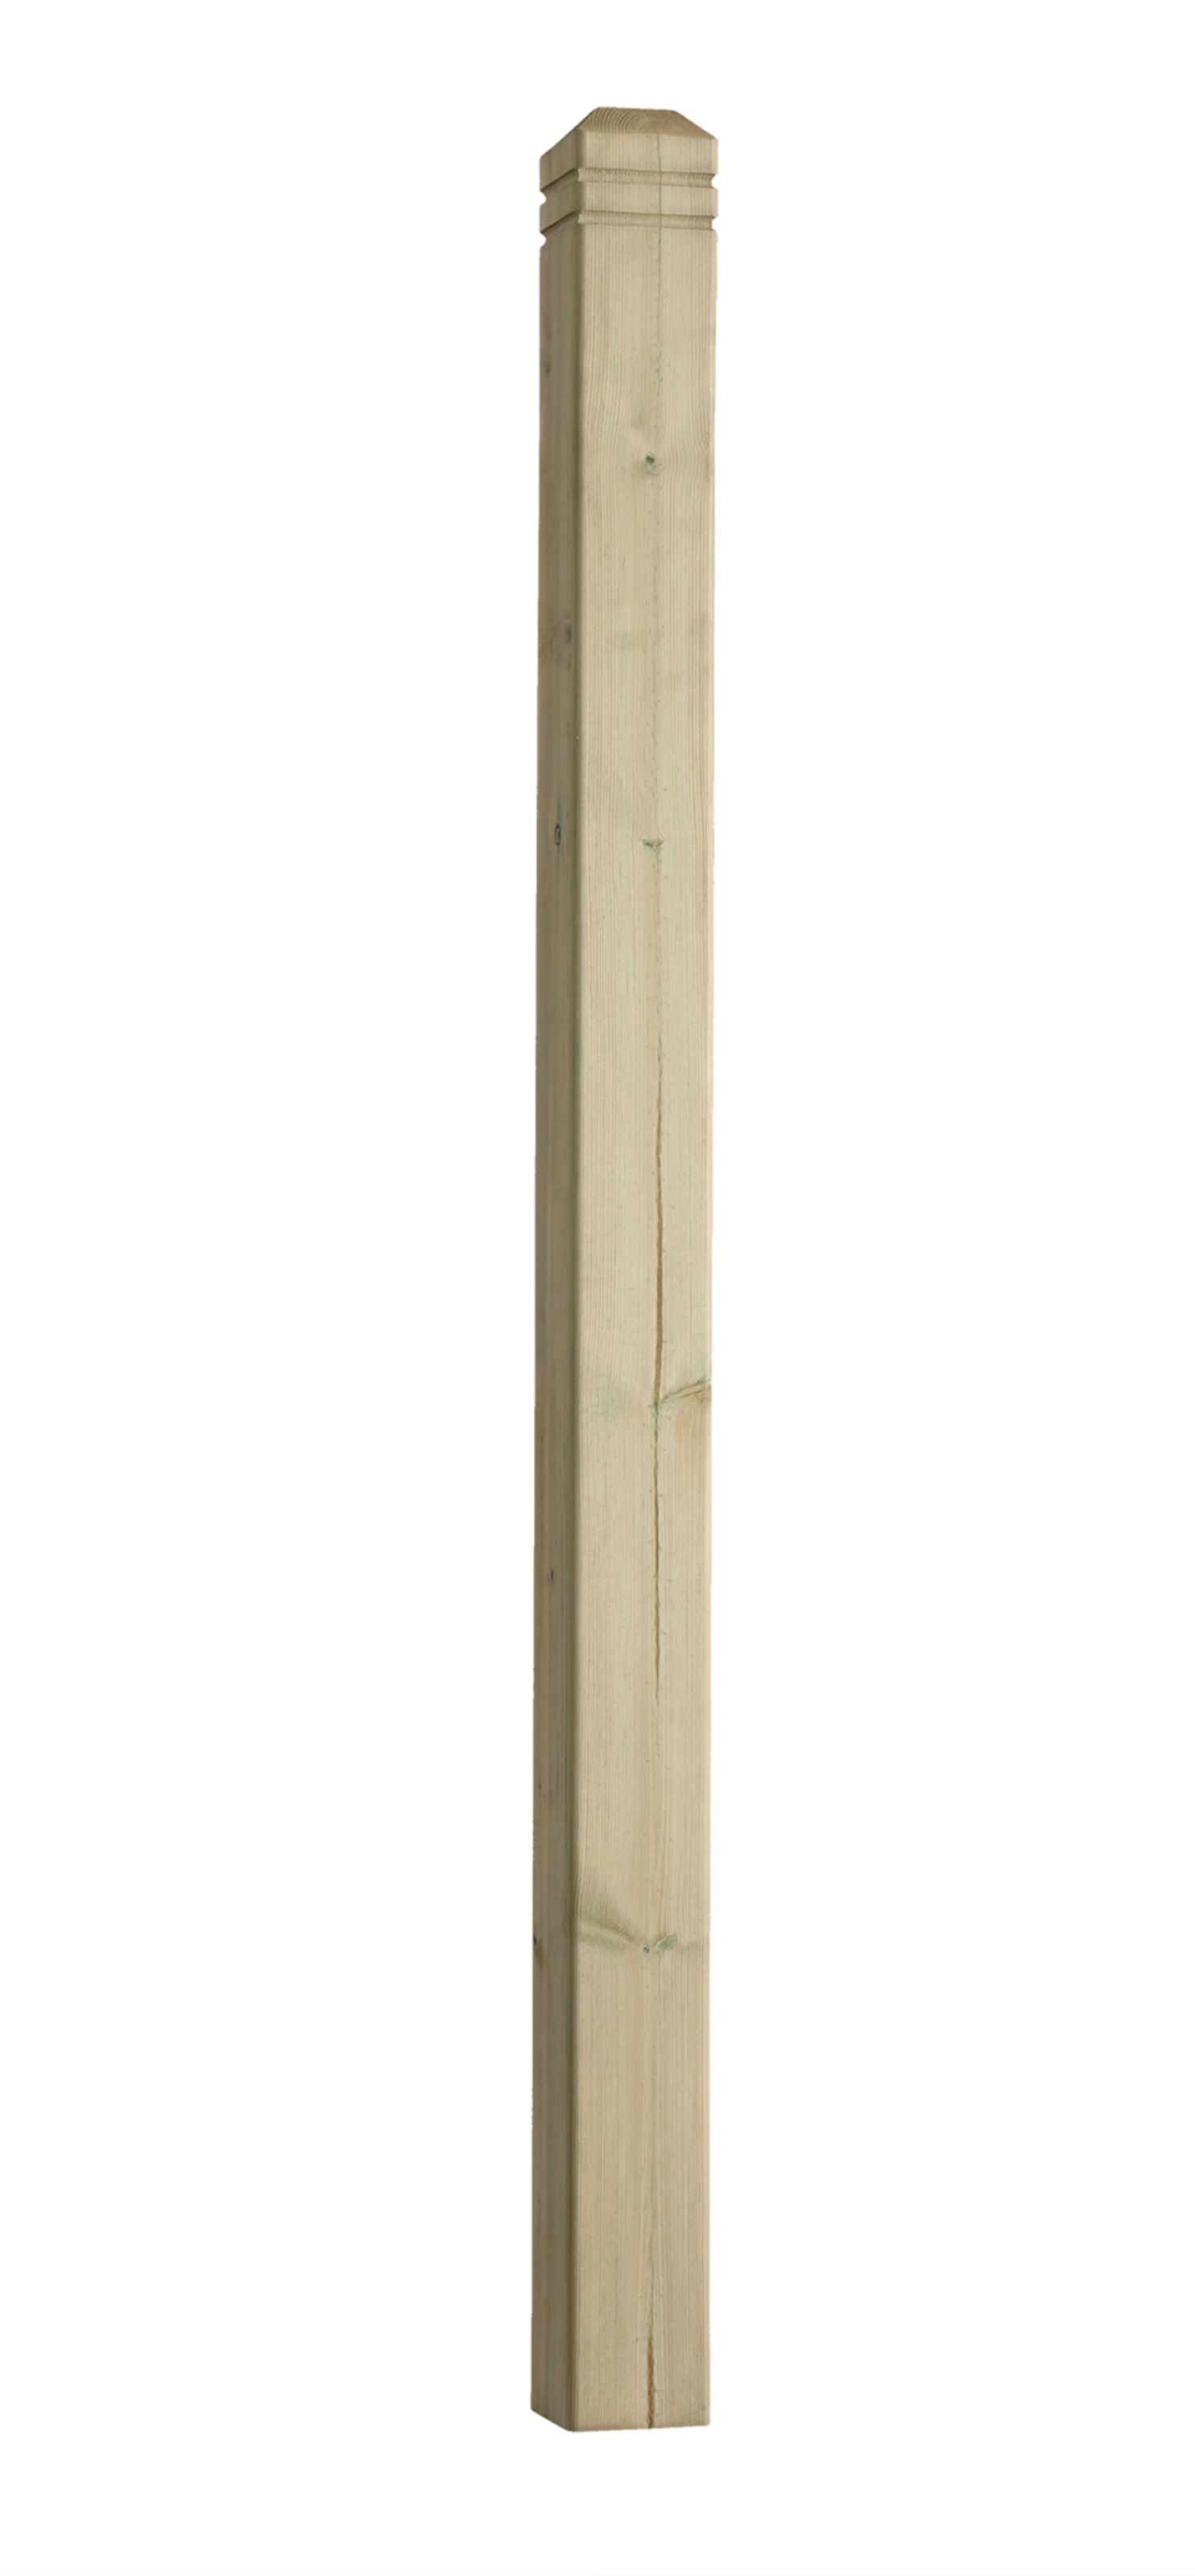 Treated Chamfer & Bead Square Deck Newel Post 82x82x1250mm - DEP12CB